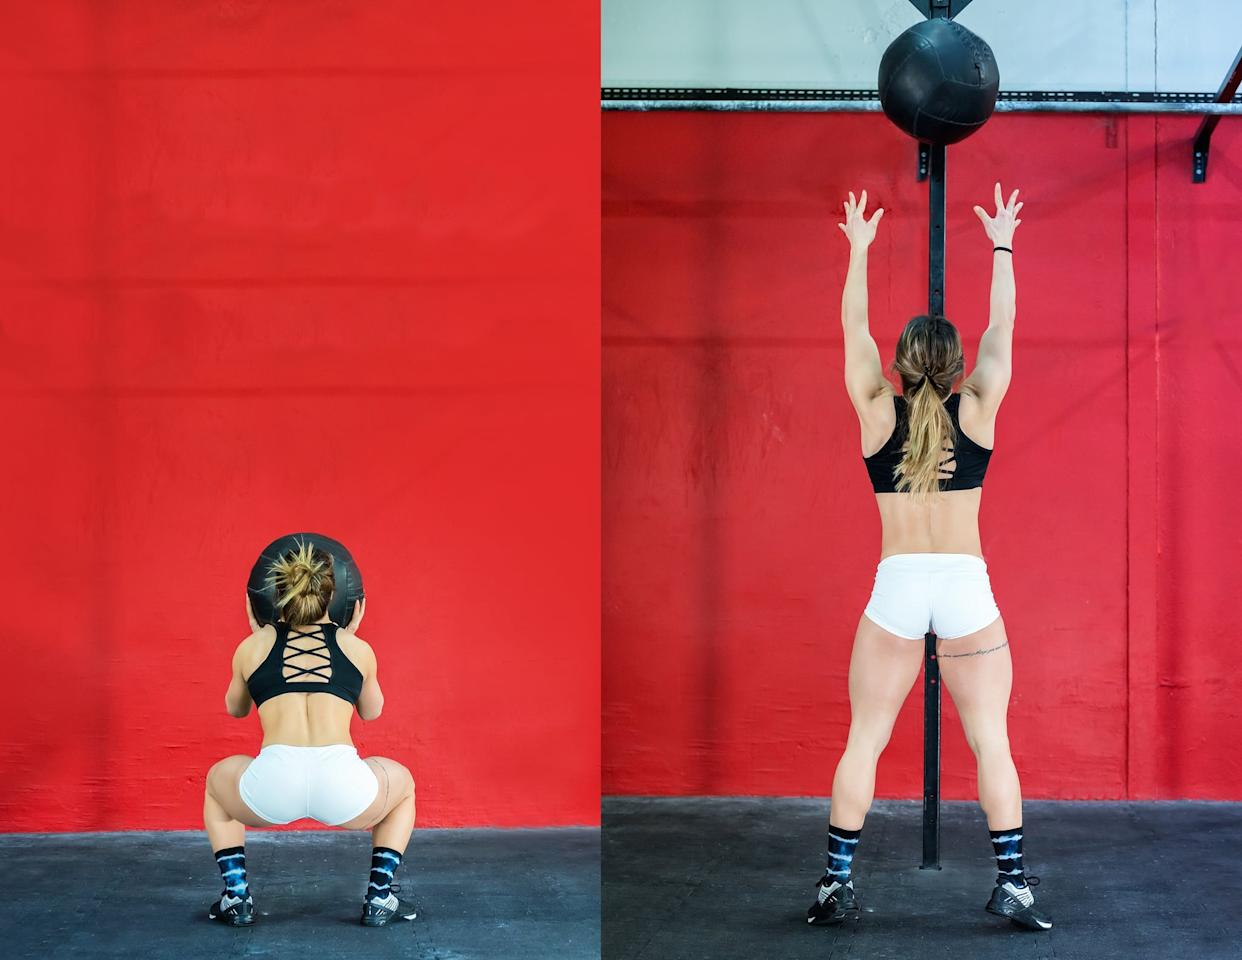 <ul> <li>Stand in front of a wall holding your medicine ball with both hands in front of your chest.</li> <li>Squat down low with your hips below your knees. As you straighten your legs, throw the ball up to a specific spot on the wall or a target, about eight to 10 feet from the floor. You want to use the power of your lower body to propel the ball up, coming onto the balls of your feet.  </li> <li>Keep your arms extended, ready to catch the ball after it bounces off the wall. This counts as one rep.</li> <li>Complete 15 wall balls.</li> </ul>